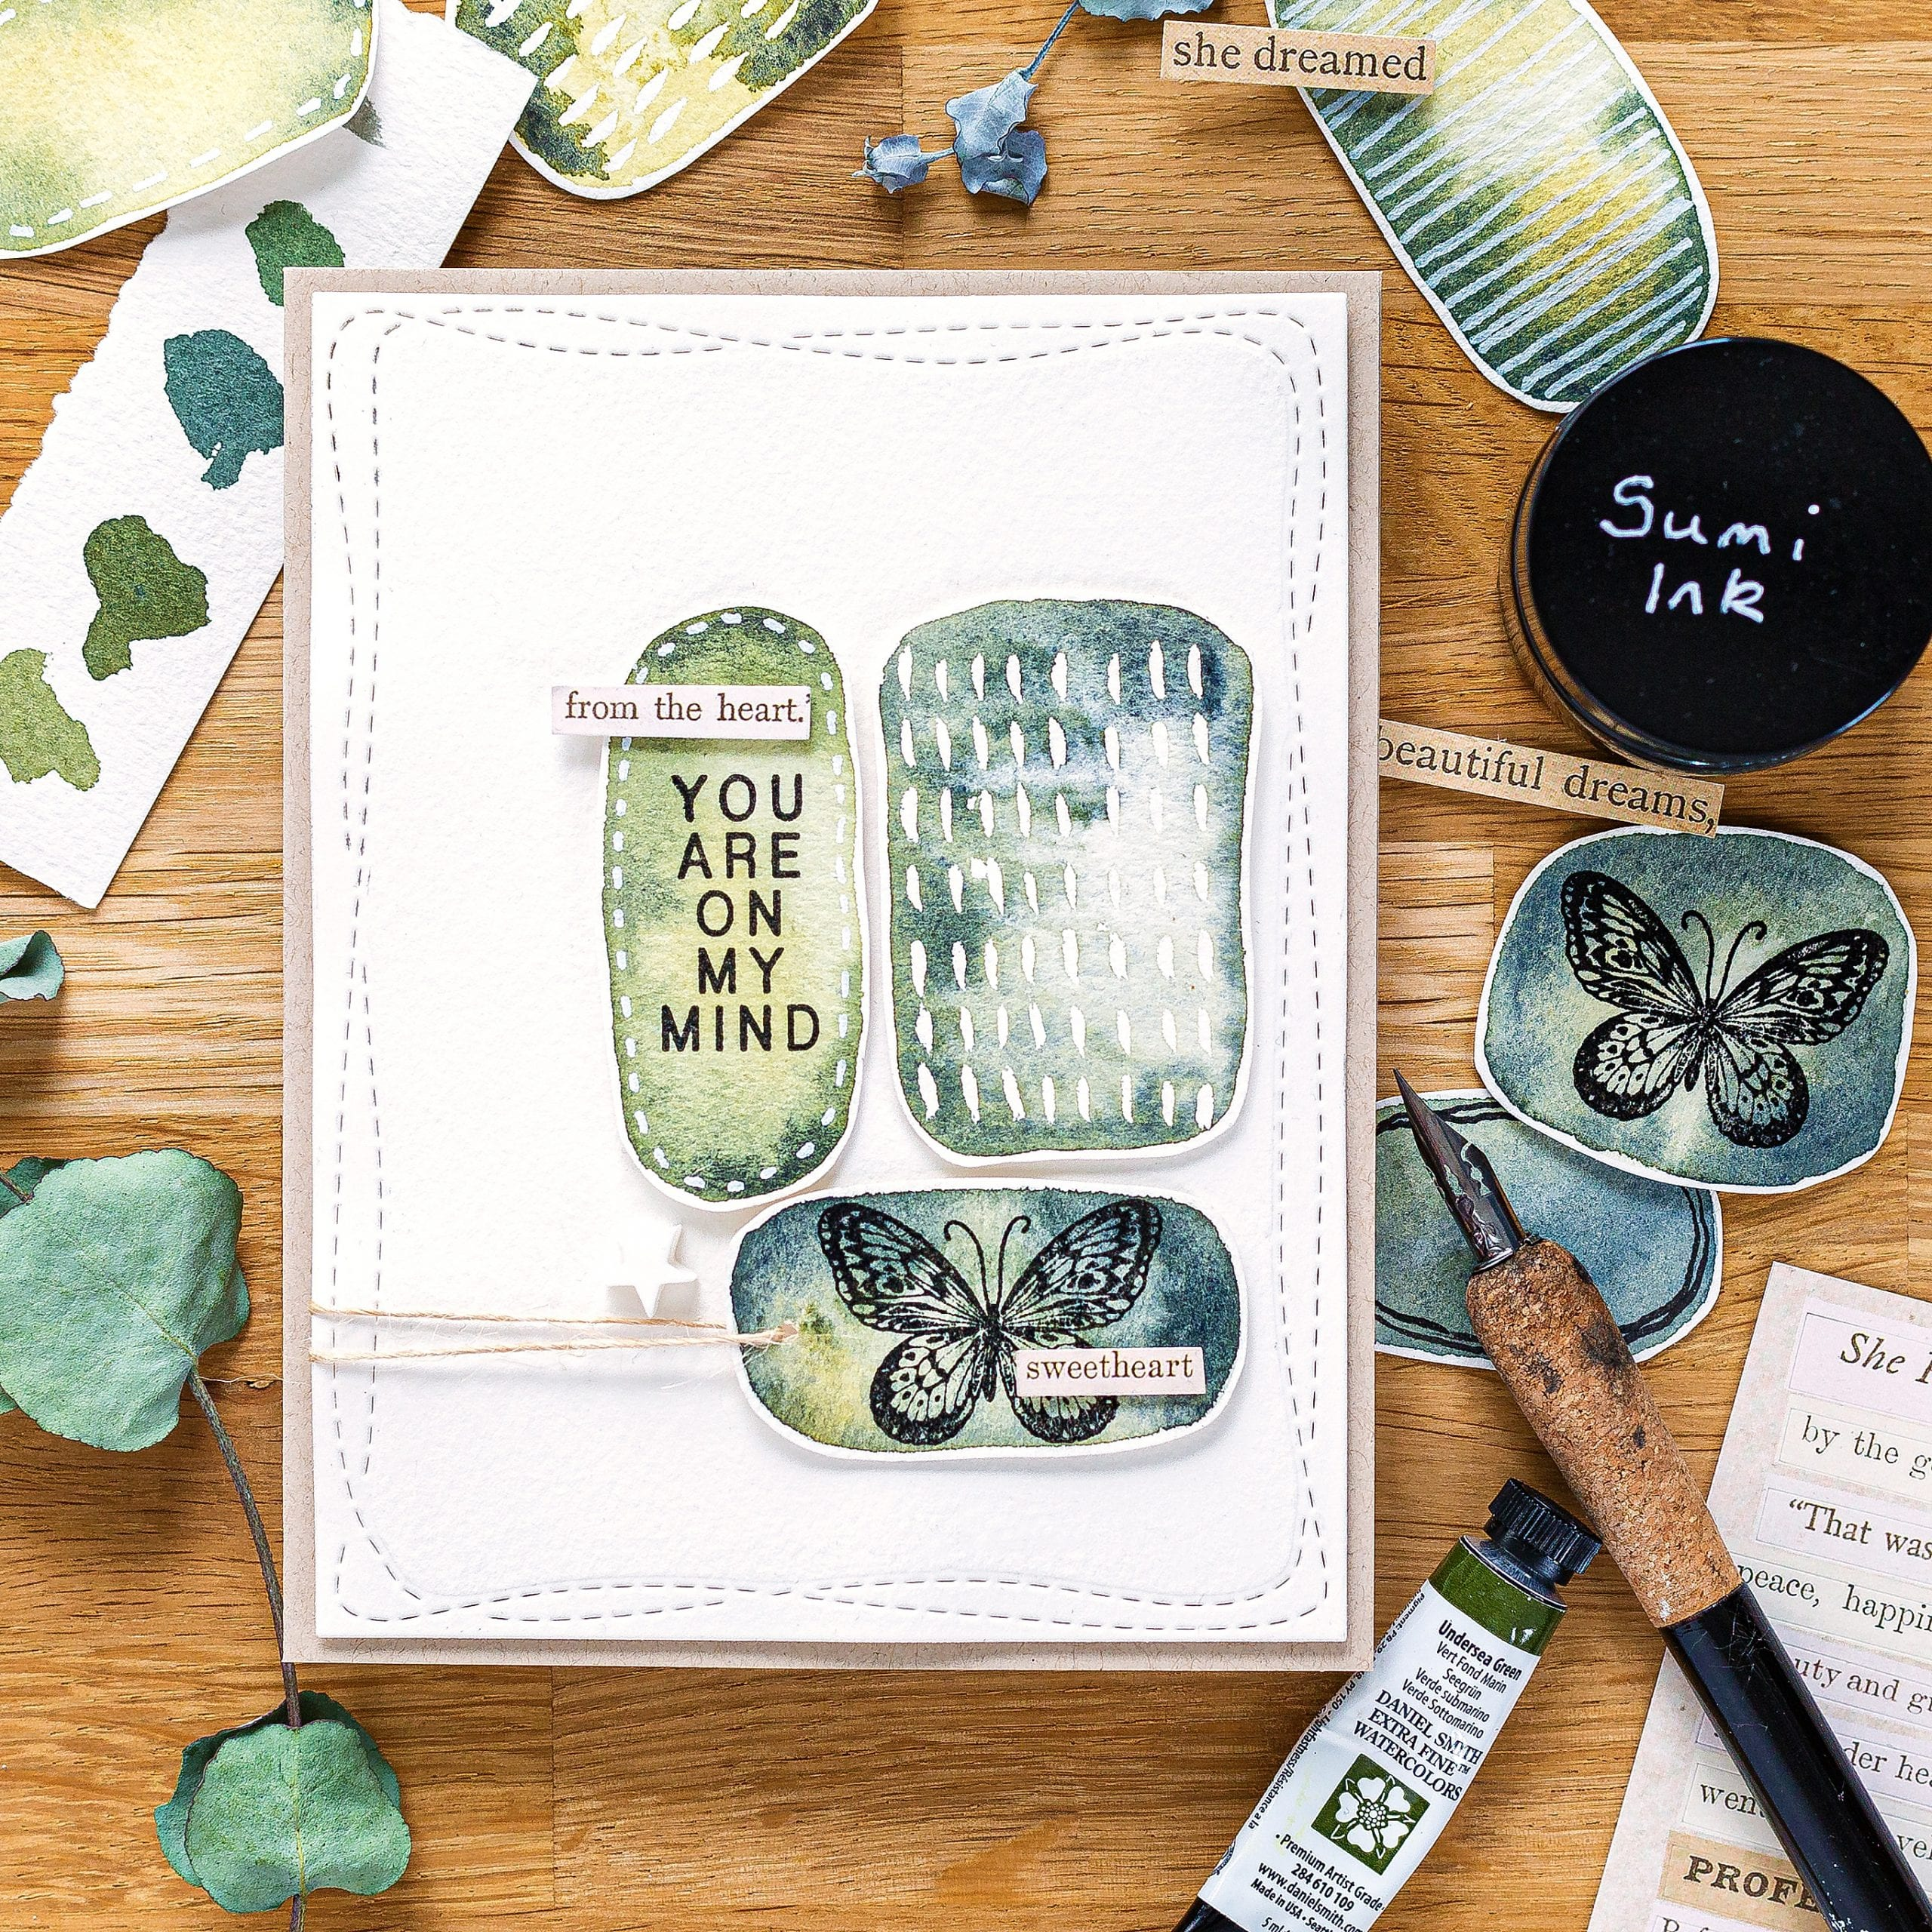 Easy watercolour background tutorial, handmade card by Debby Hughes using supplies from Simon Says Stamp #watercolor #homemade